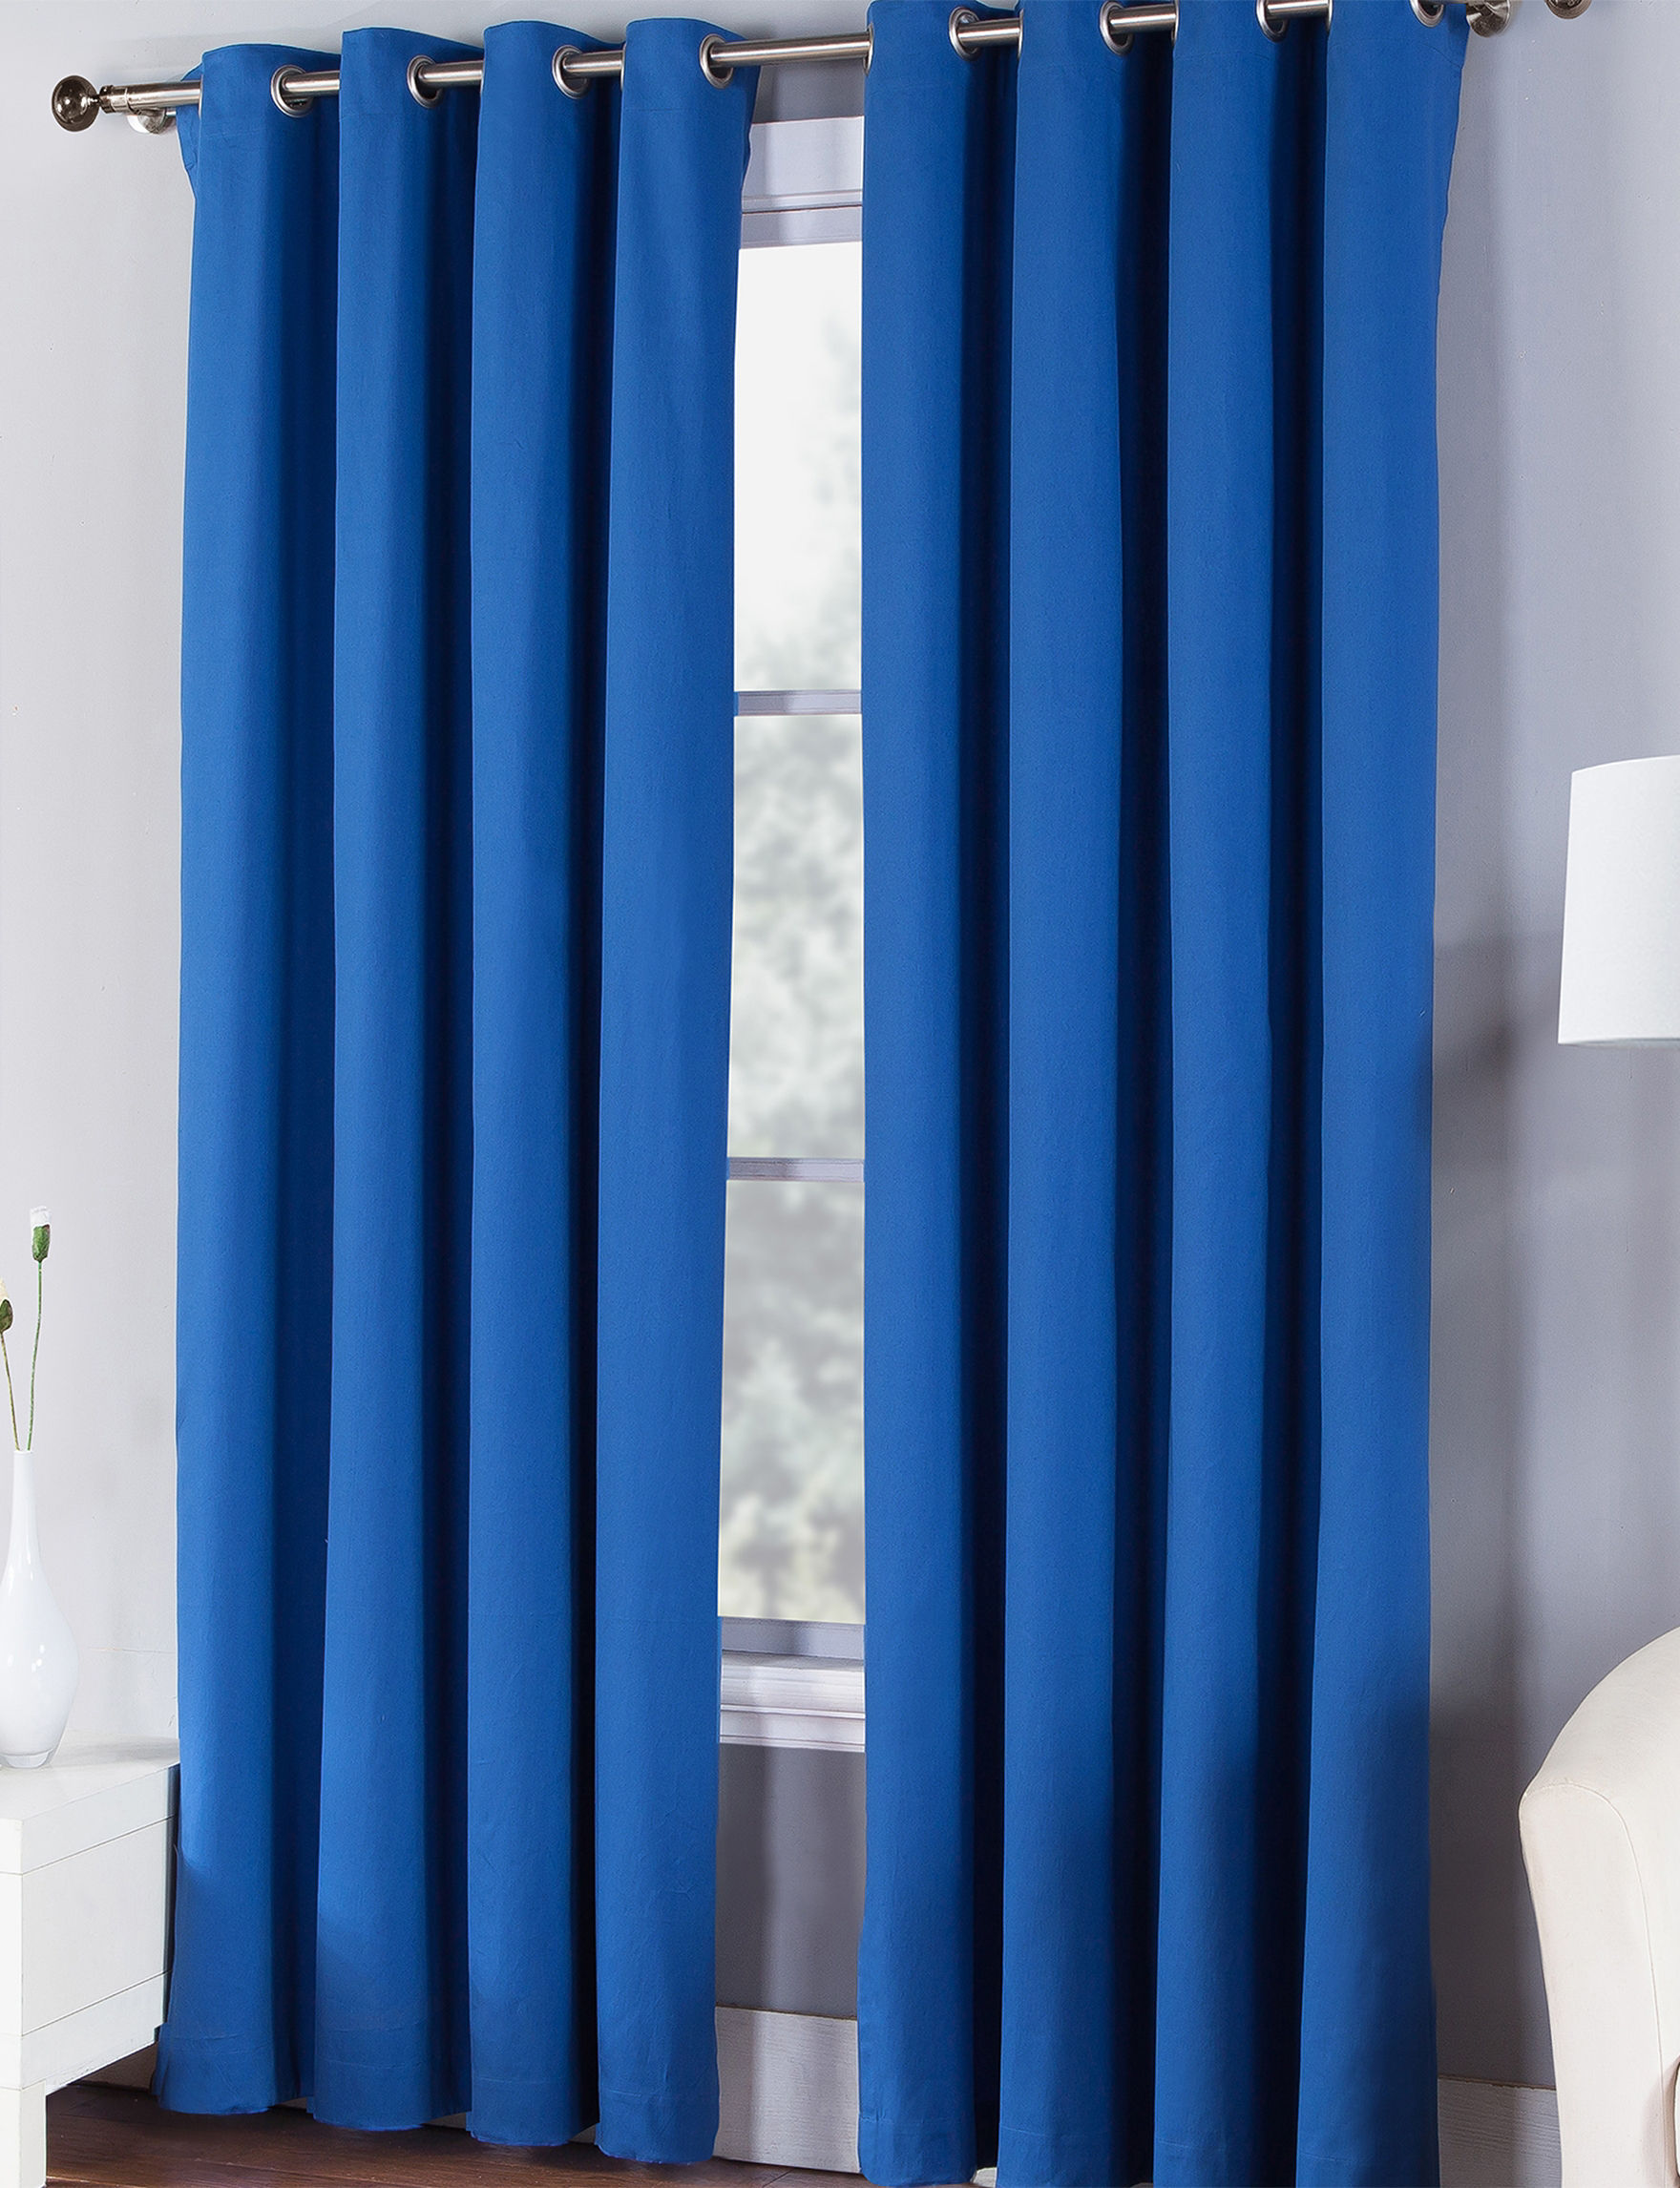 Fiesta Lapis Curtains & Drapes Window Treatments